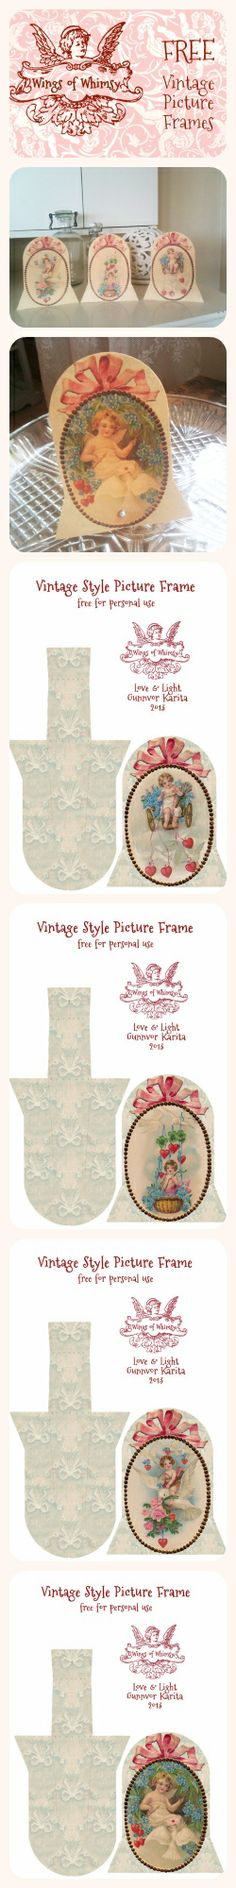 Free printable from Wings of Whimsy: Vintage Style Picture Frames - free for personal use